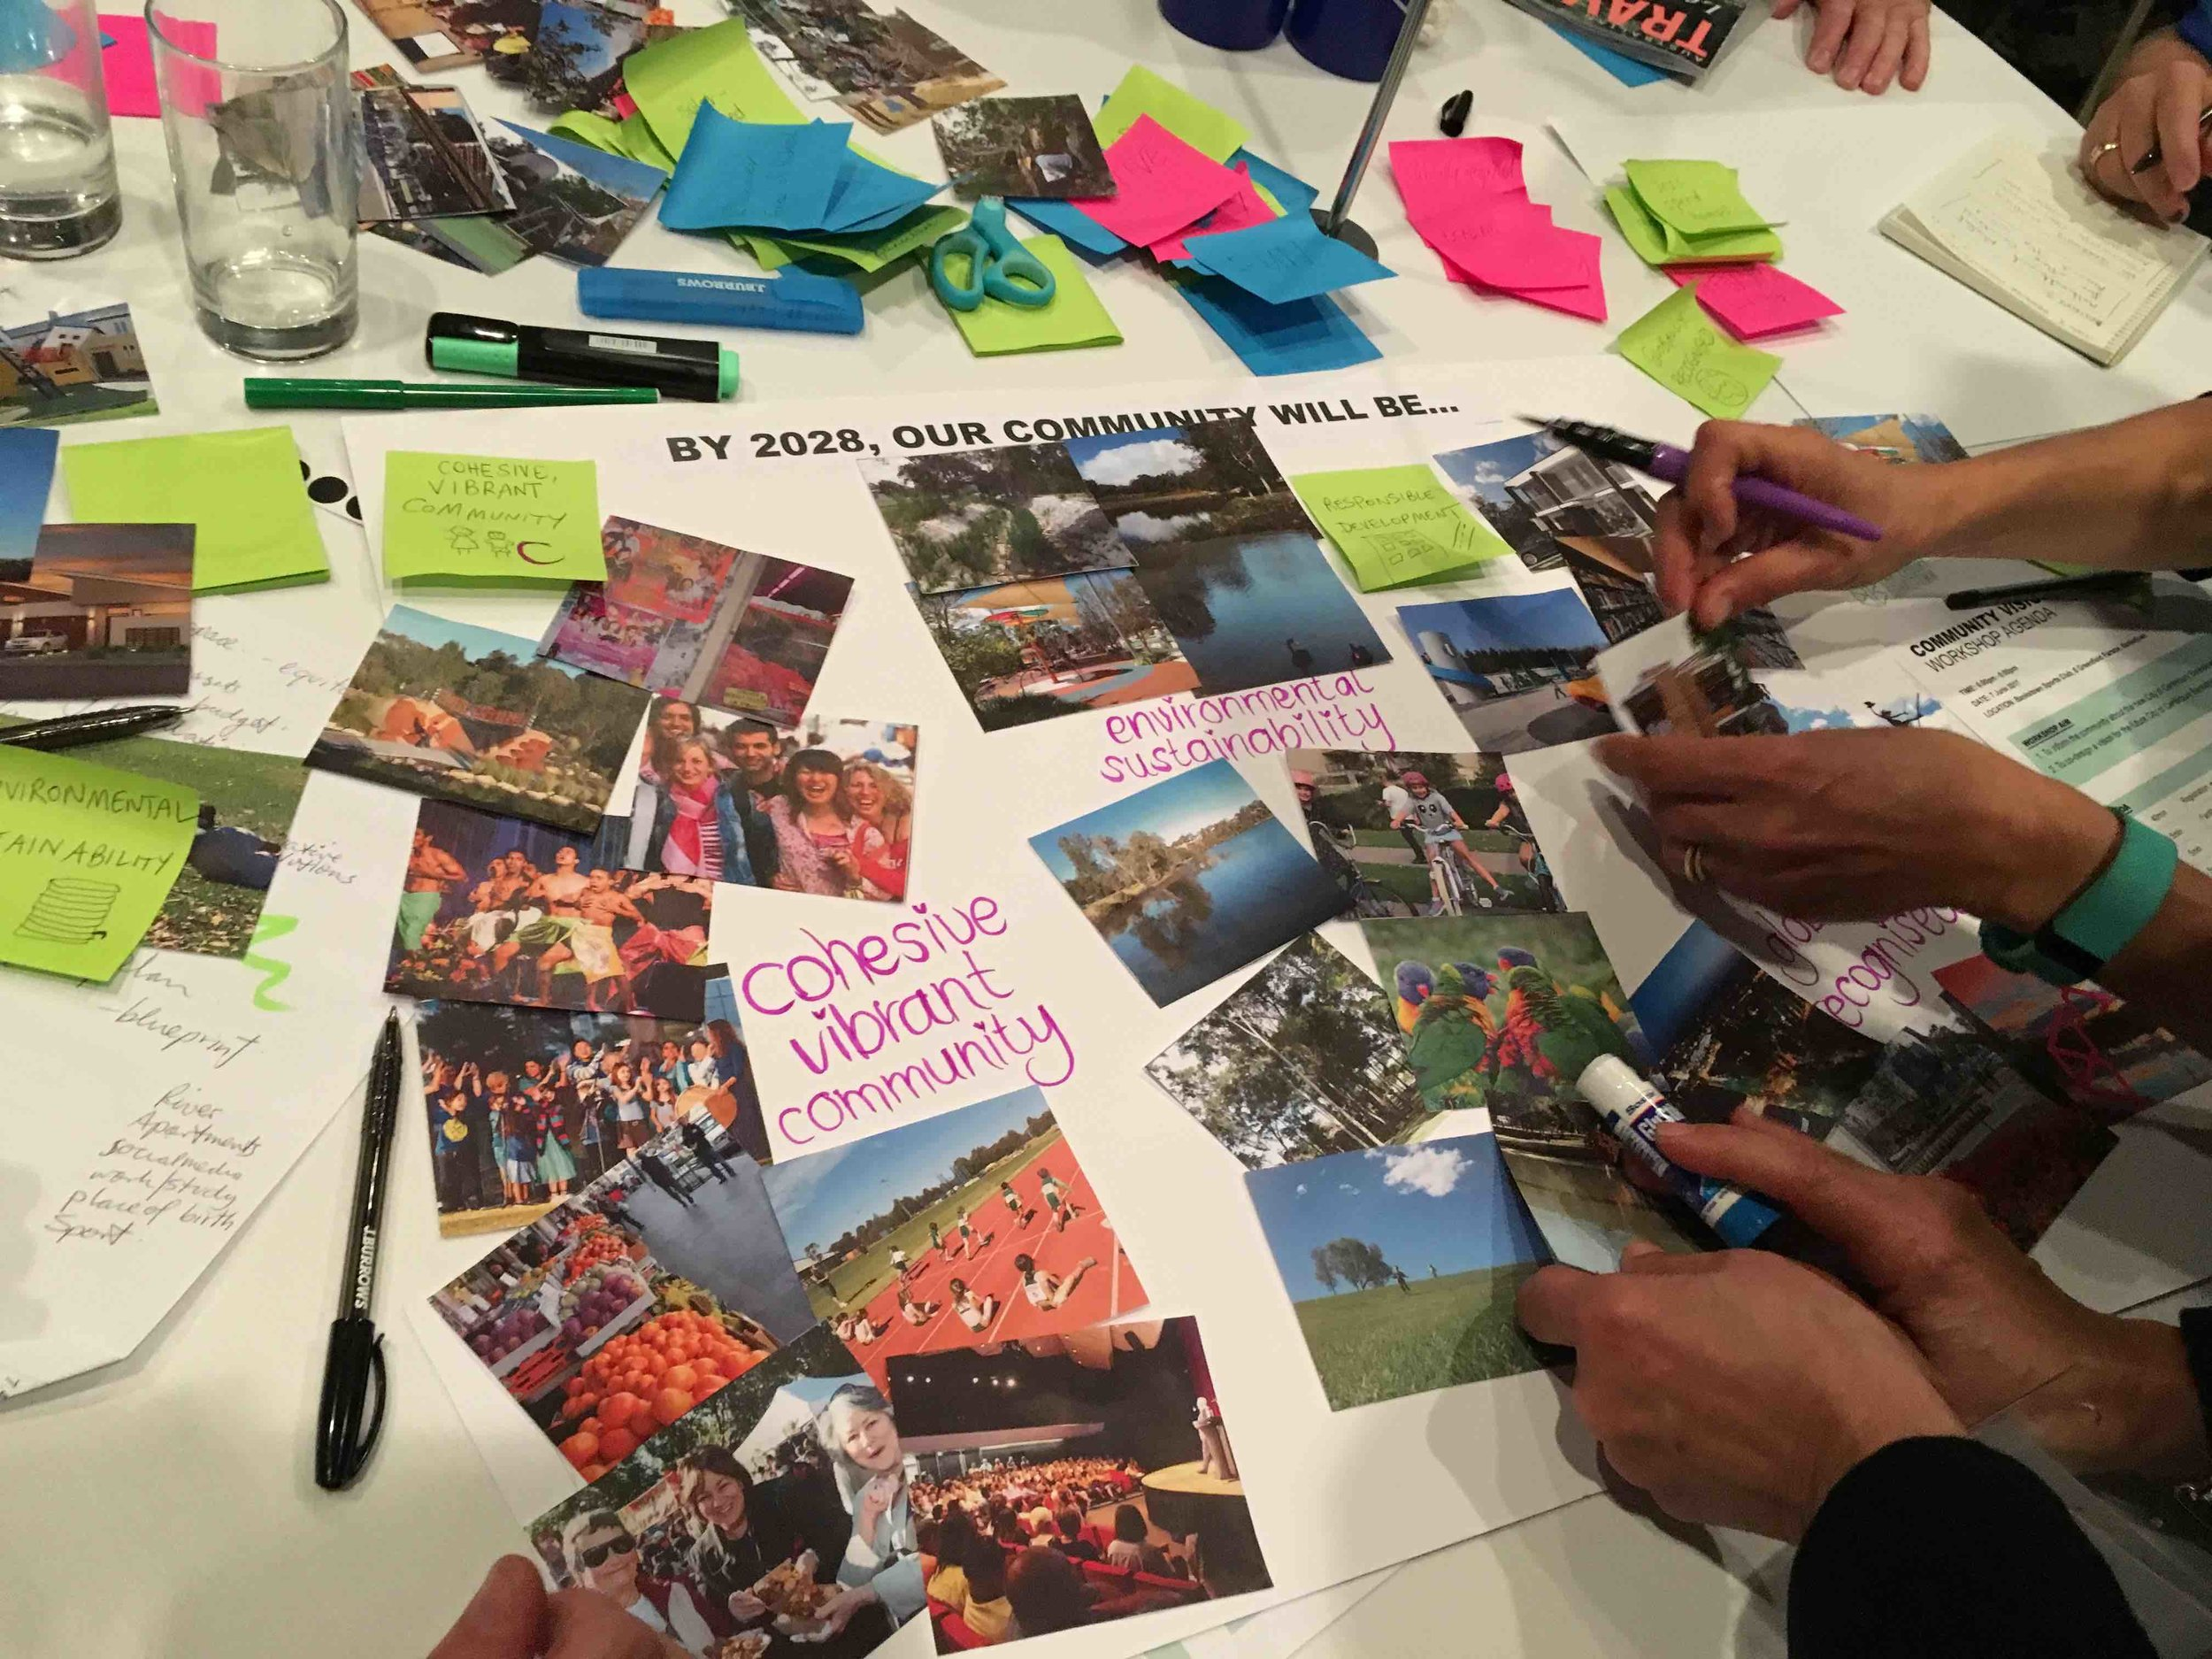 City of Canterbury Bankstown Community Strategic Plan - Visioning activity